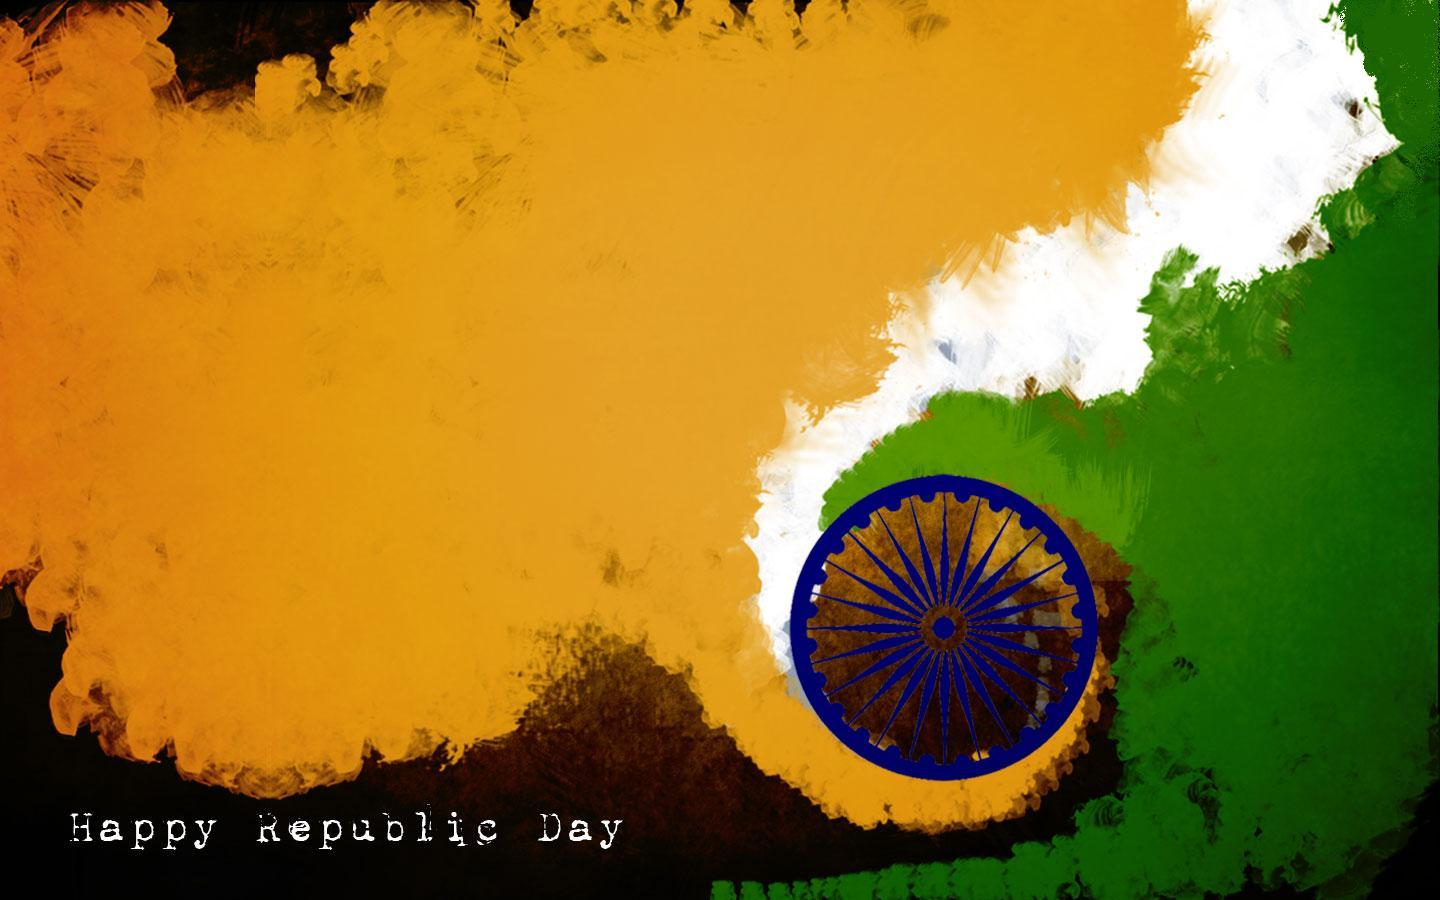 Republic day image9